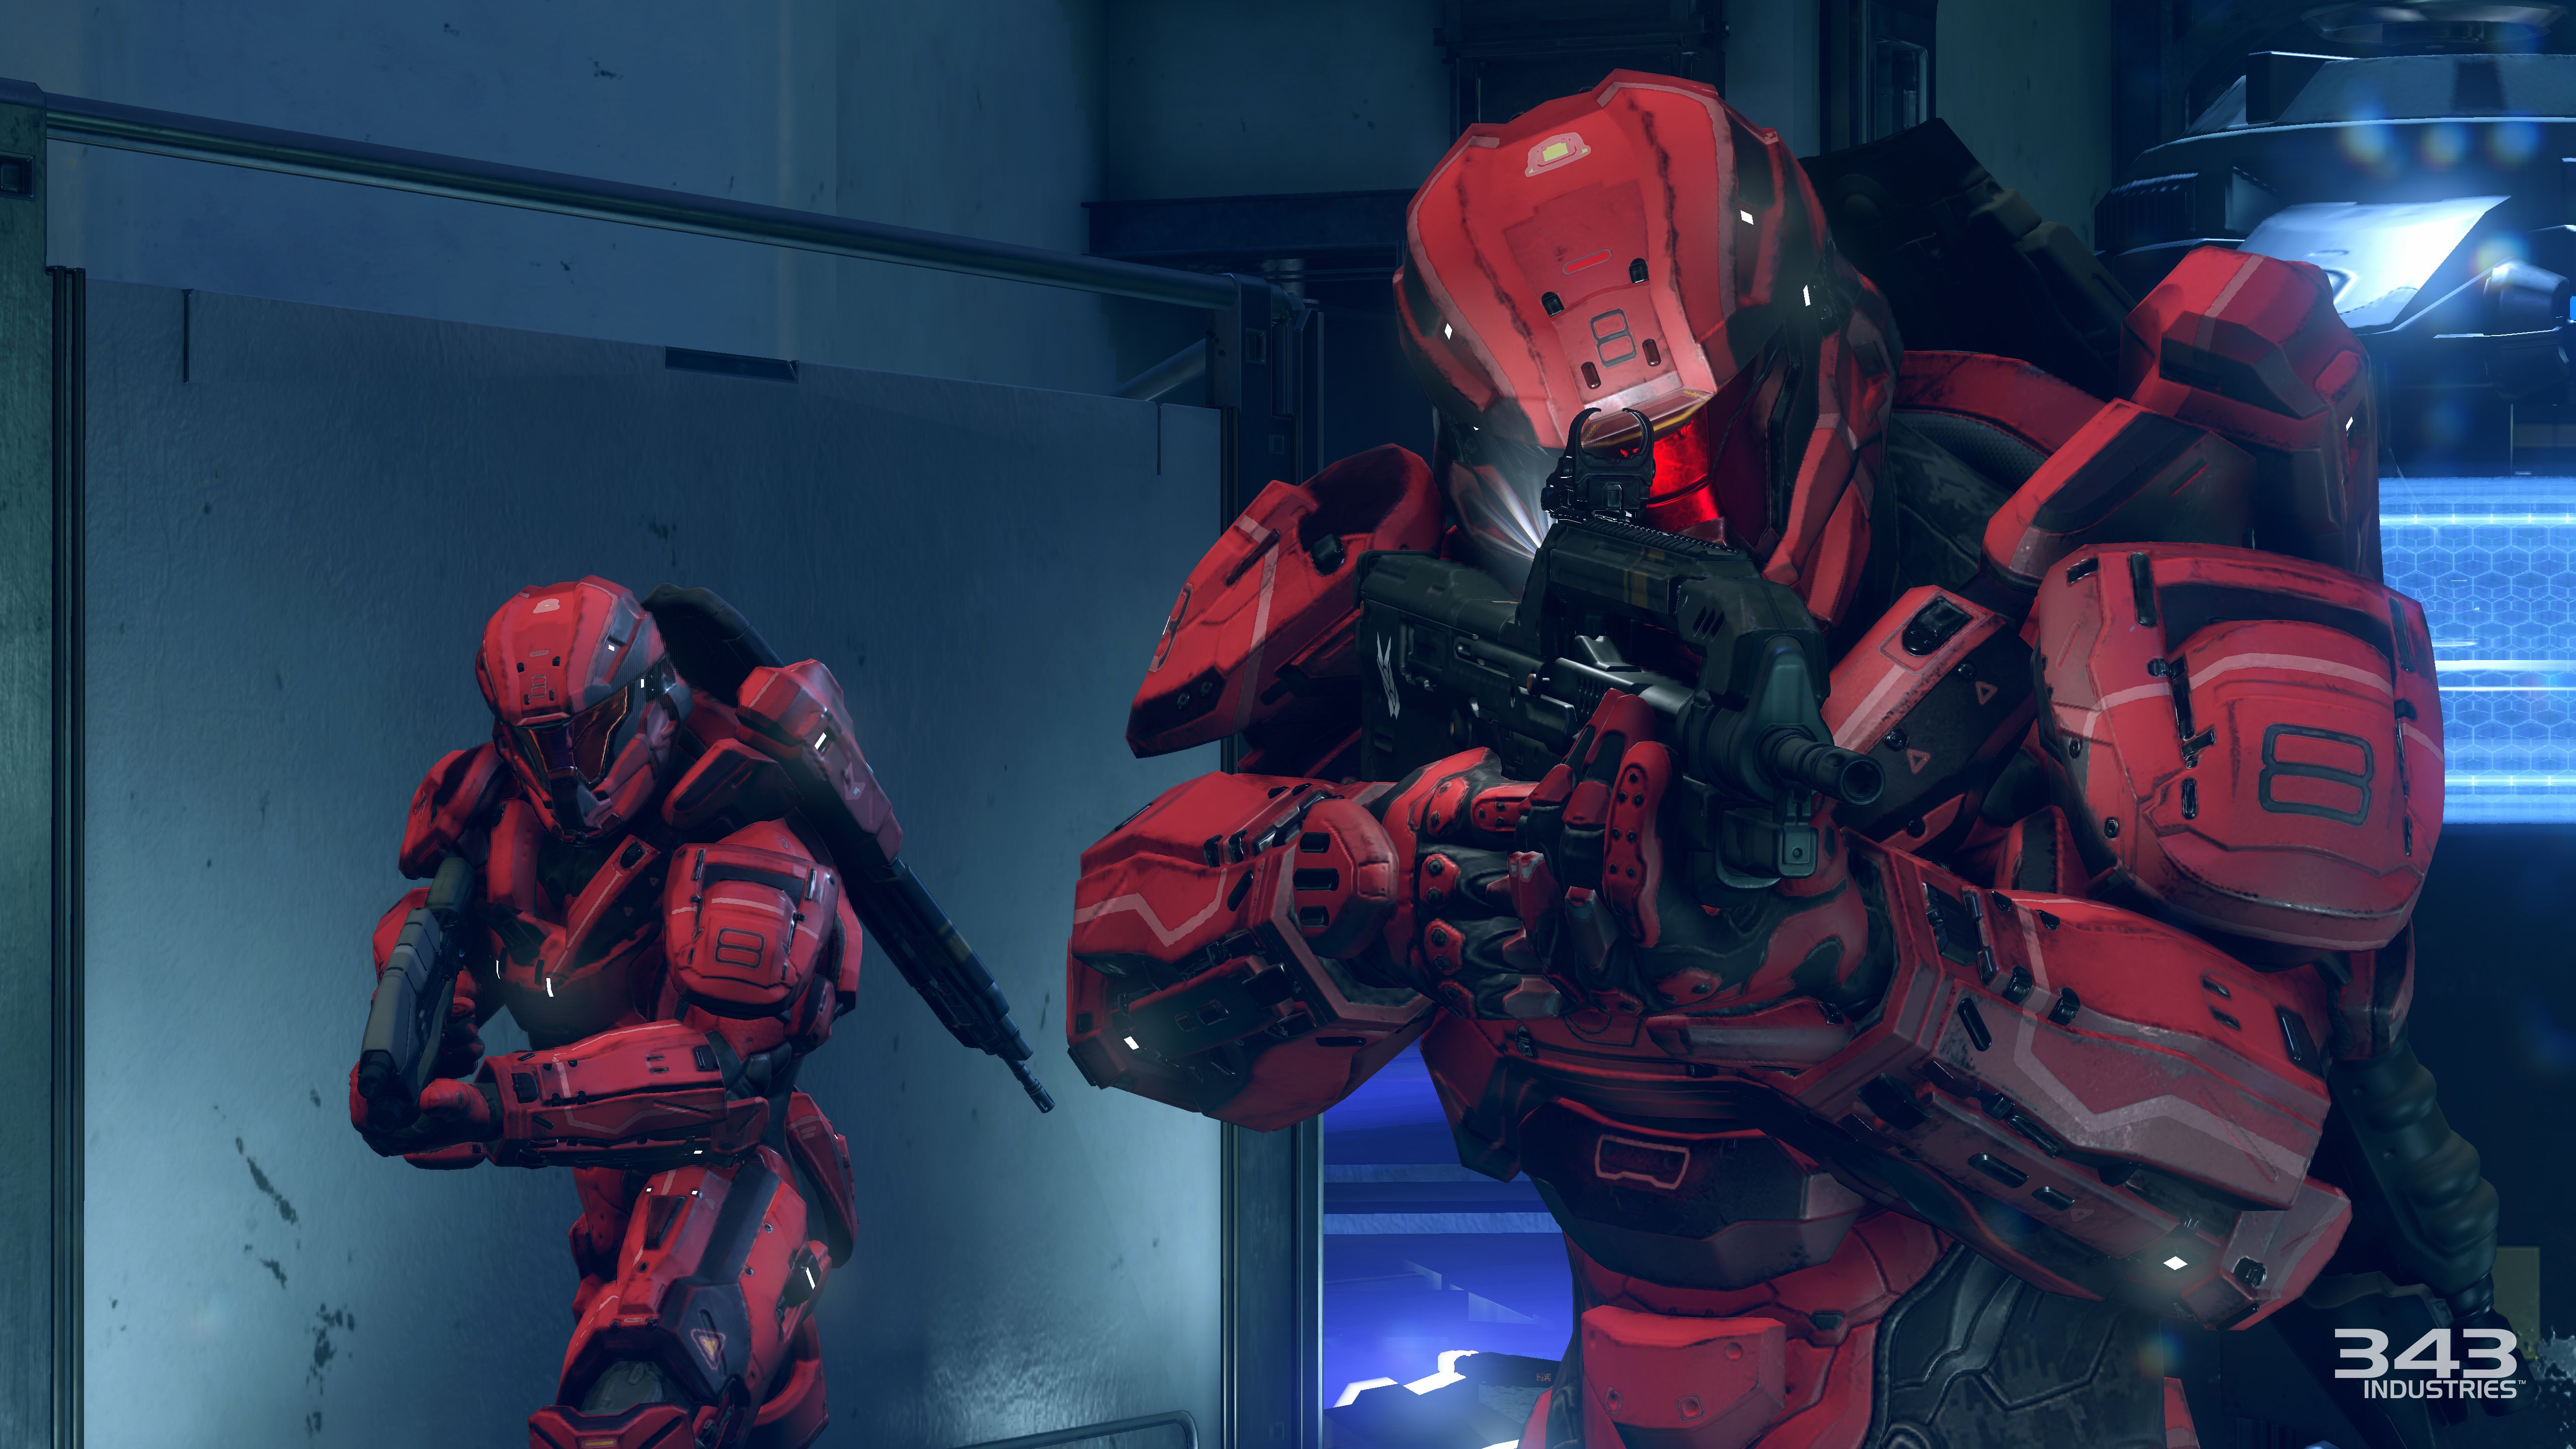 Gear up for Halo 5: Guardians multiplayer with this 343 Industries interview!